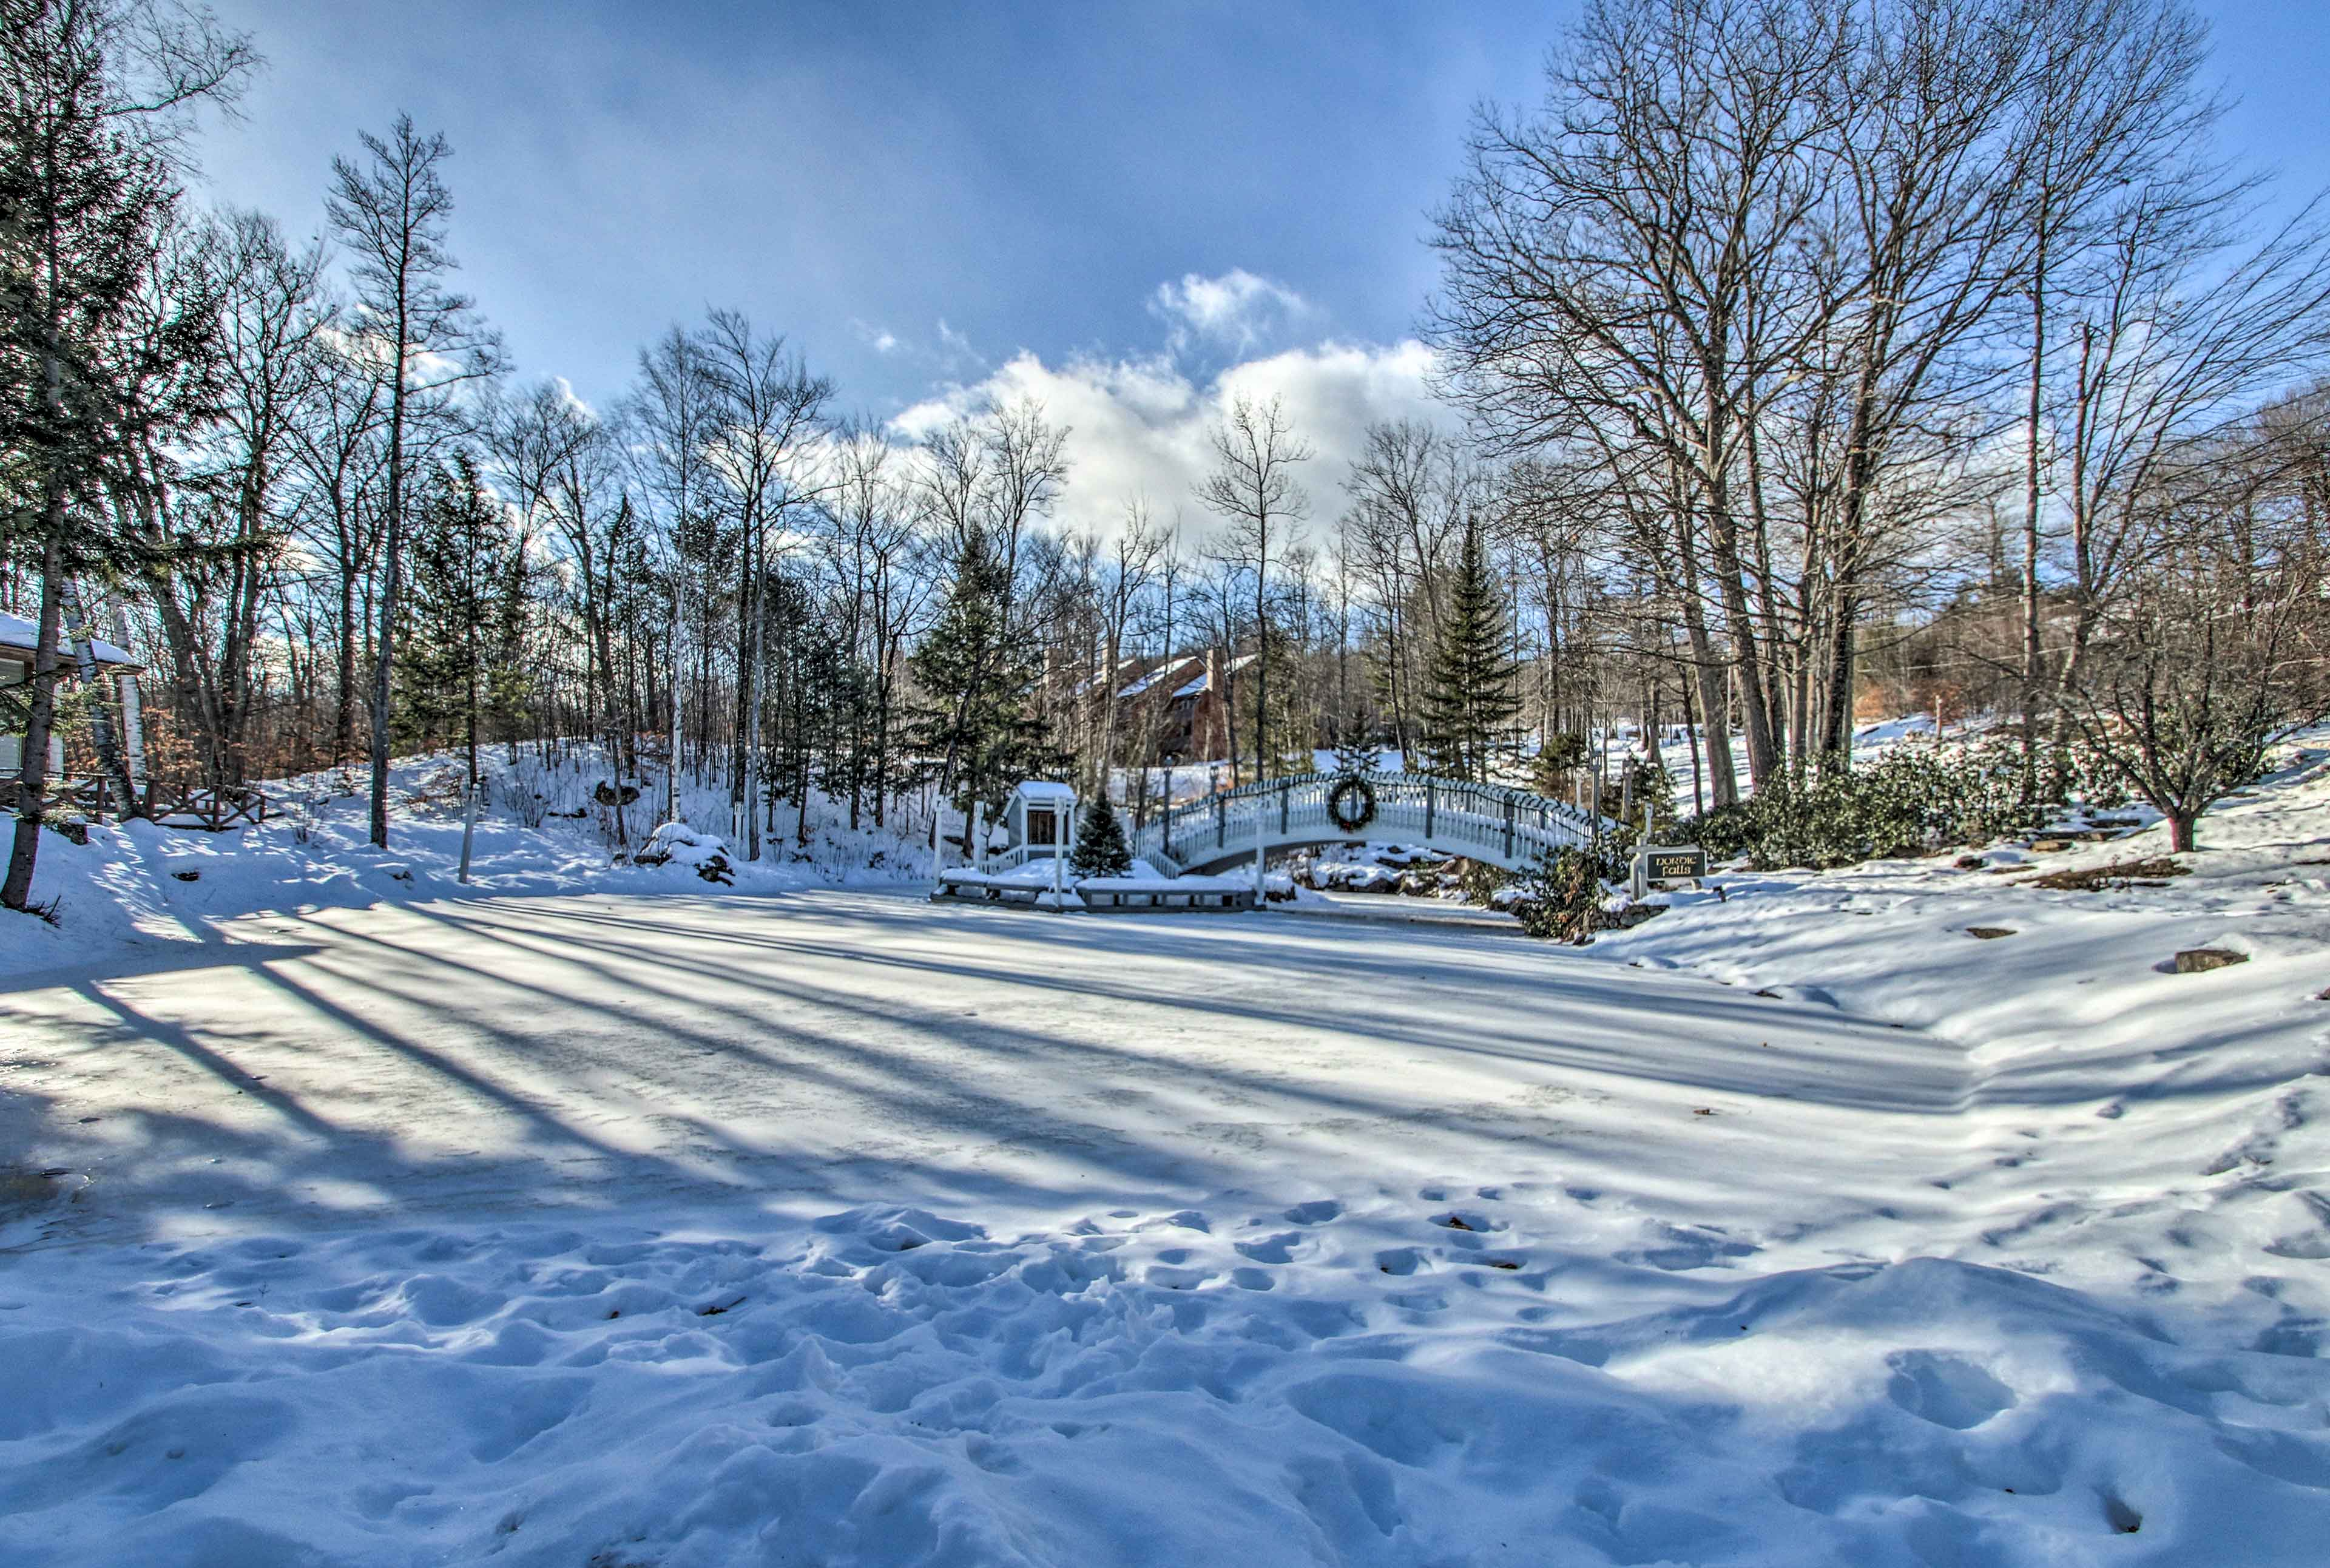 Beautiful in the snow, this pond is also perfect for a peaceful rowboat ride!